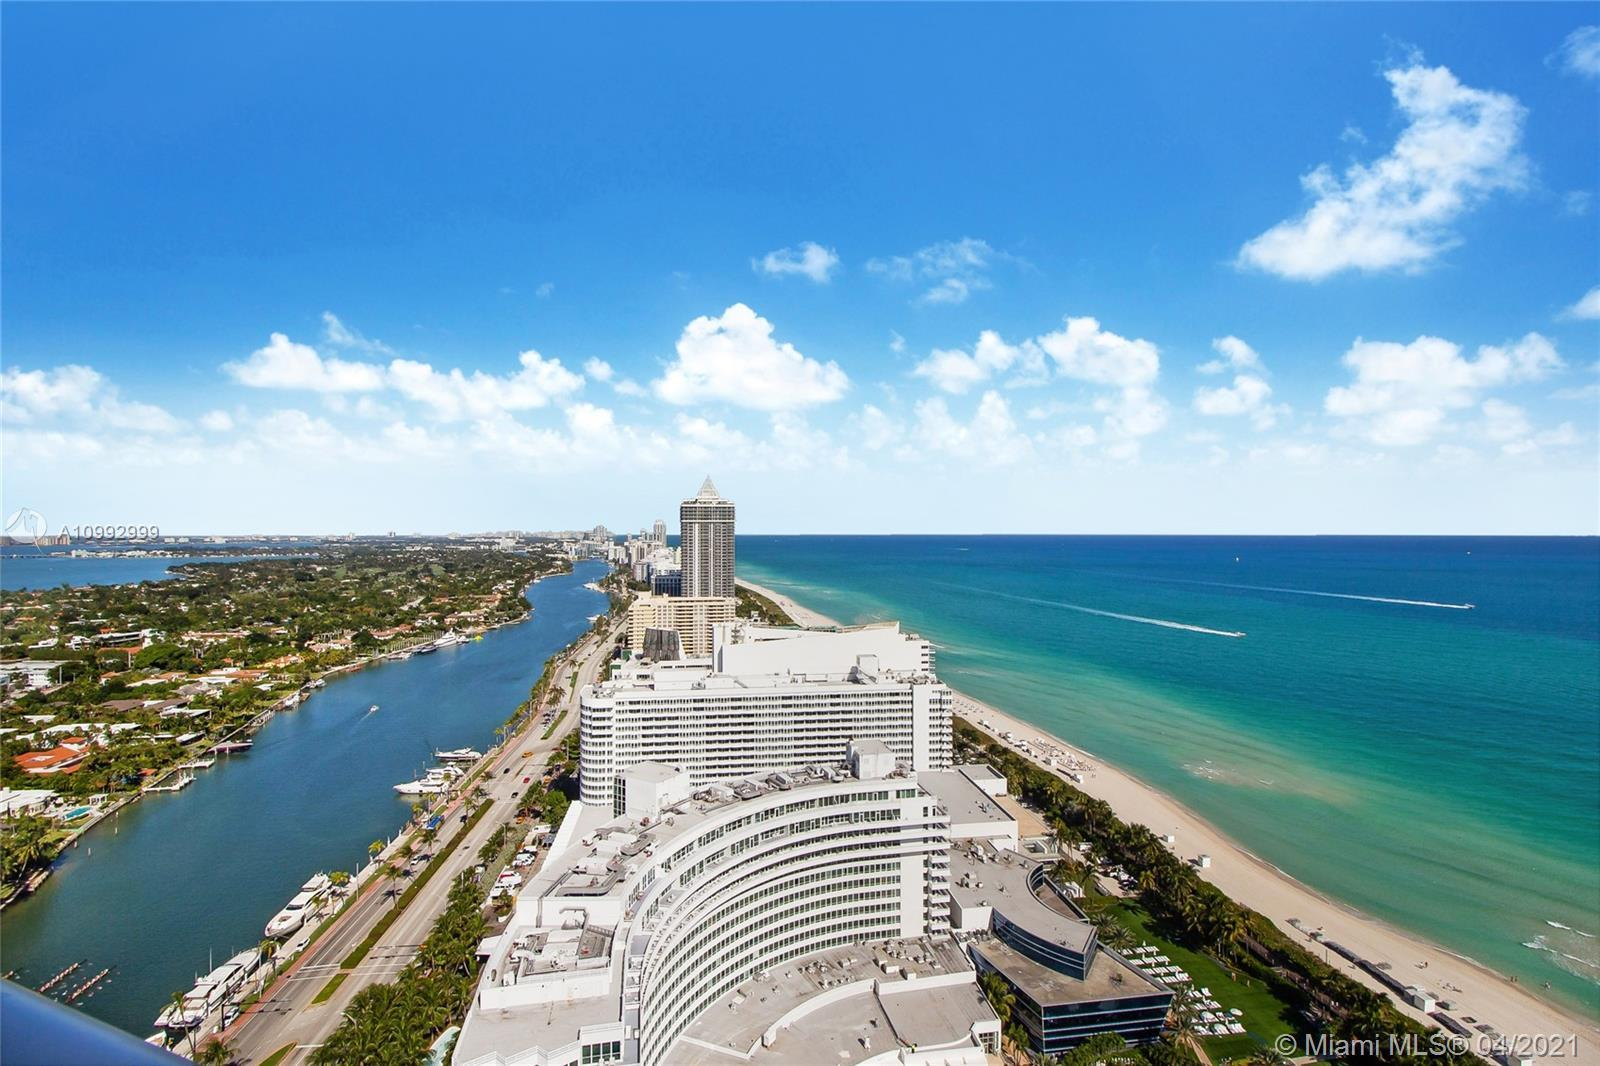 Fontainebleau II Condo-Hotel -Tresor, builded in 2005. Corner unit #3603 has direct Ocean views from